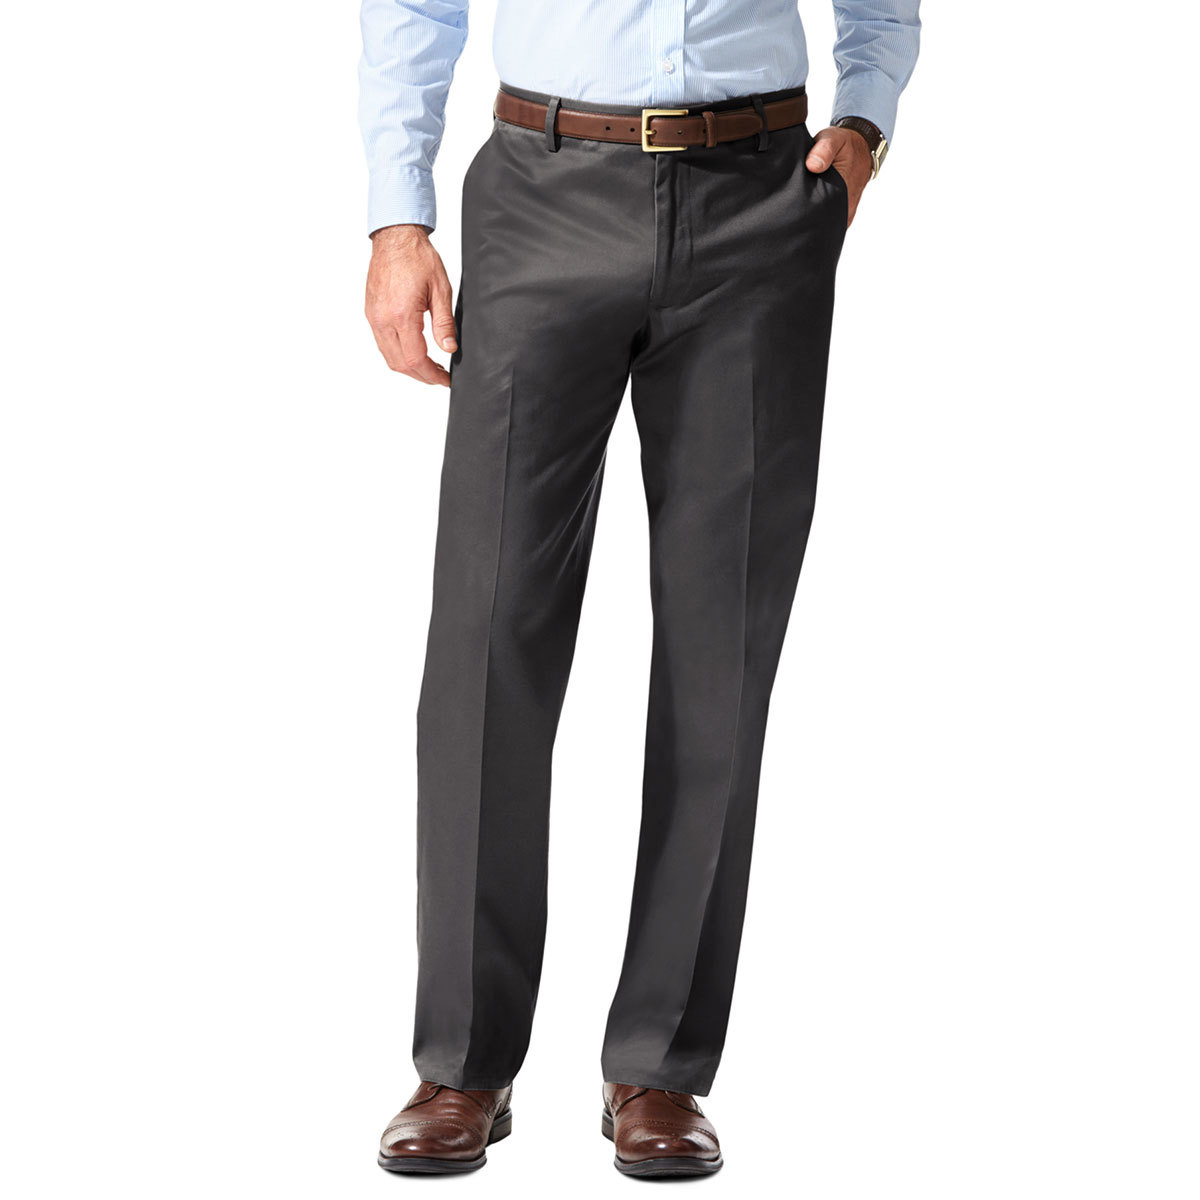 Dockers Men's Signature Stretch Straight Leg Khakis - Discontinued Style - Black, 30/34